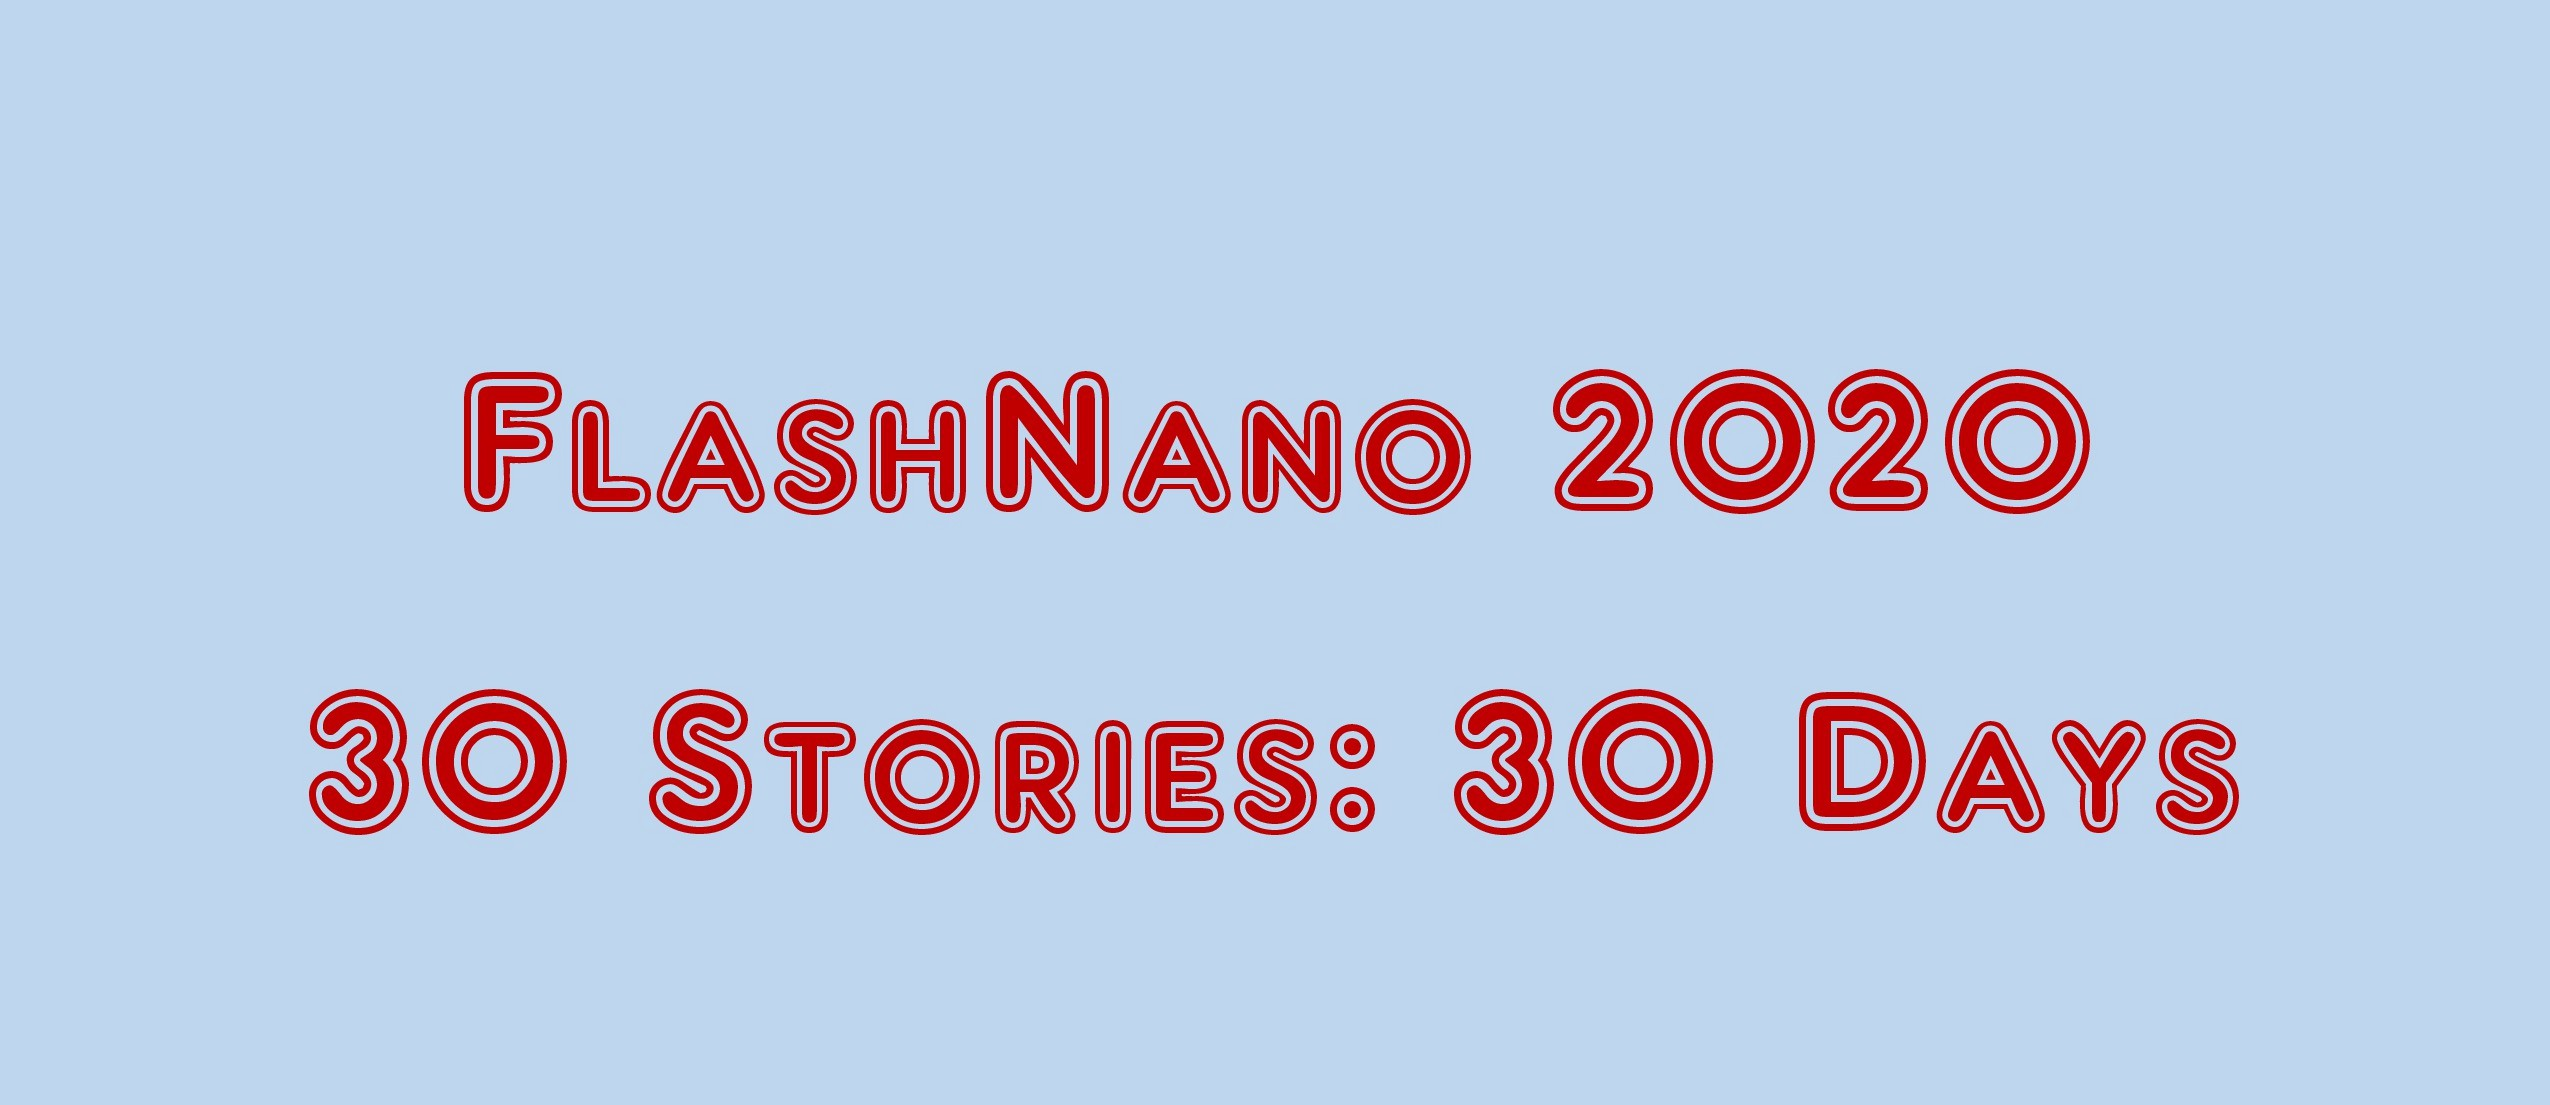 FlashNano 2020 logo